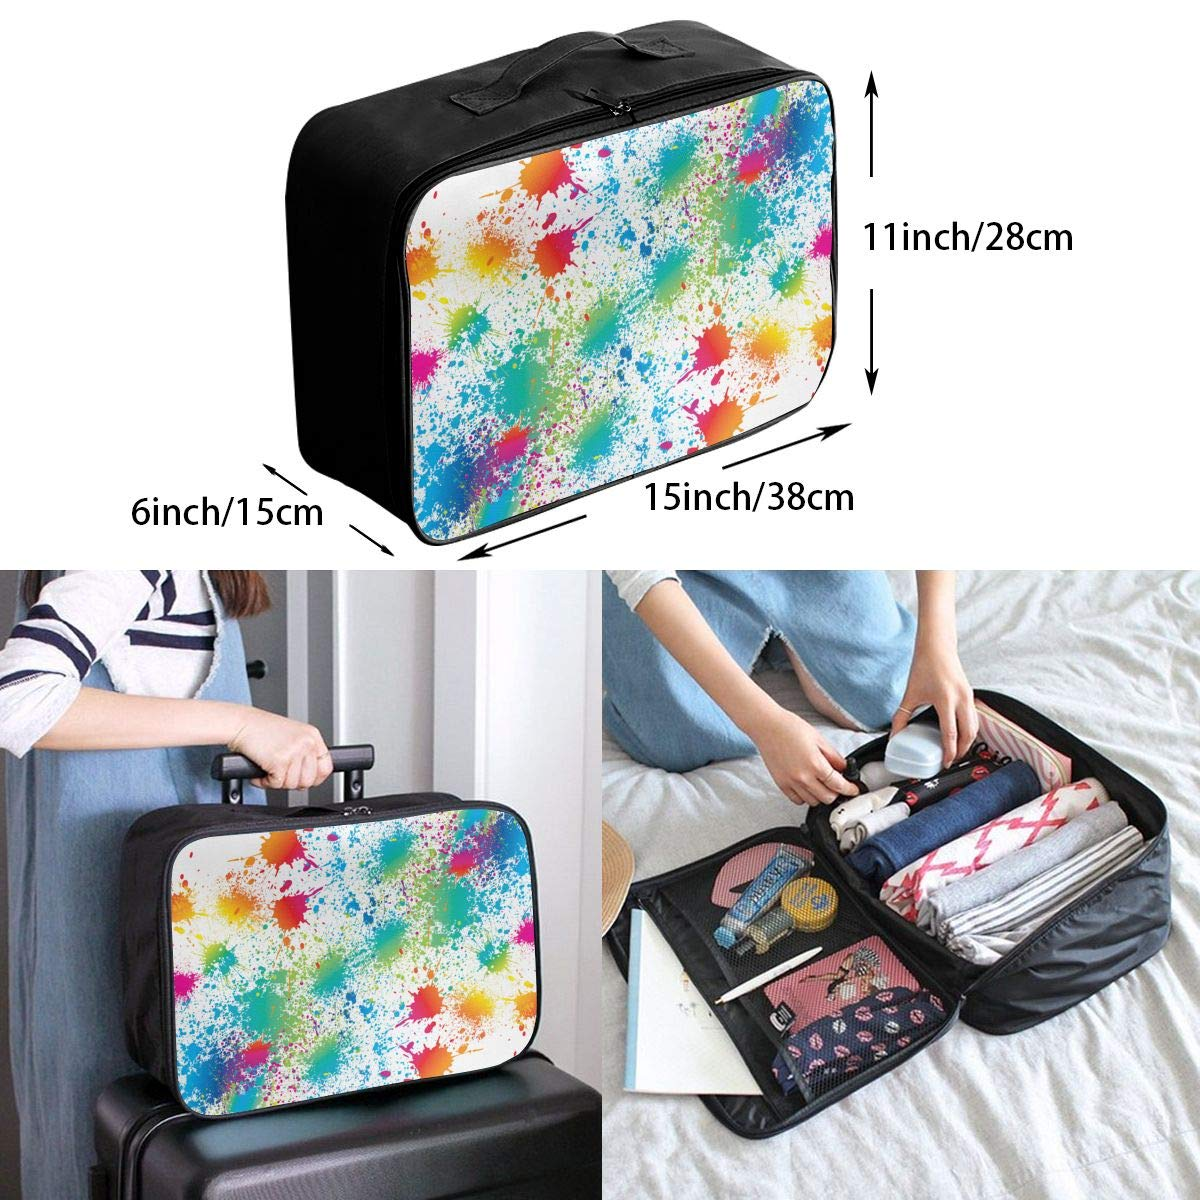 YueLJB Paint Splatter2 Lightweight Large Capacity Portable Luggage Bag Travel Duffel Bag Storage Carry Luggage Duffle Tote Bag